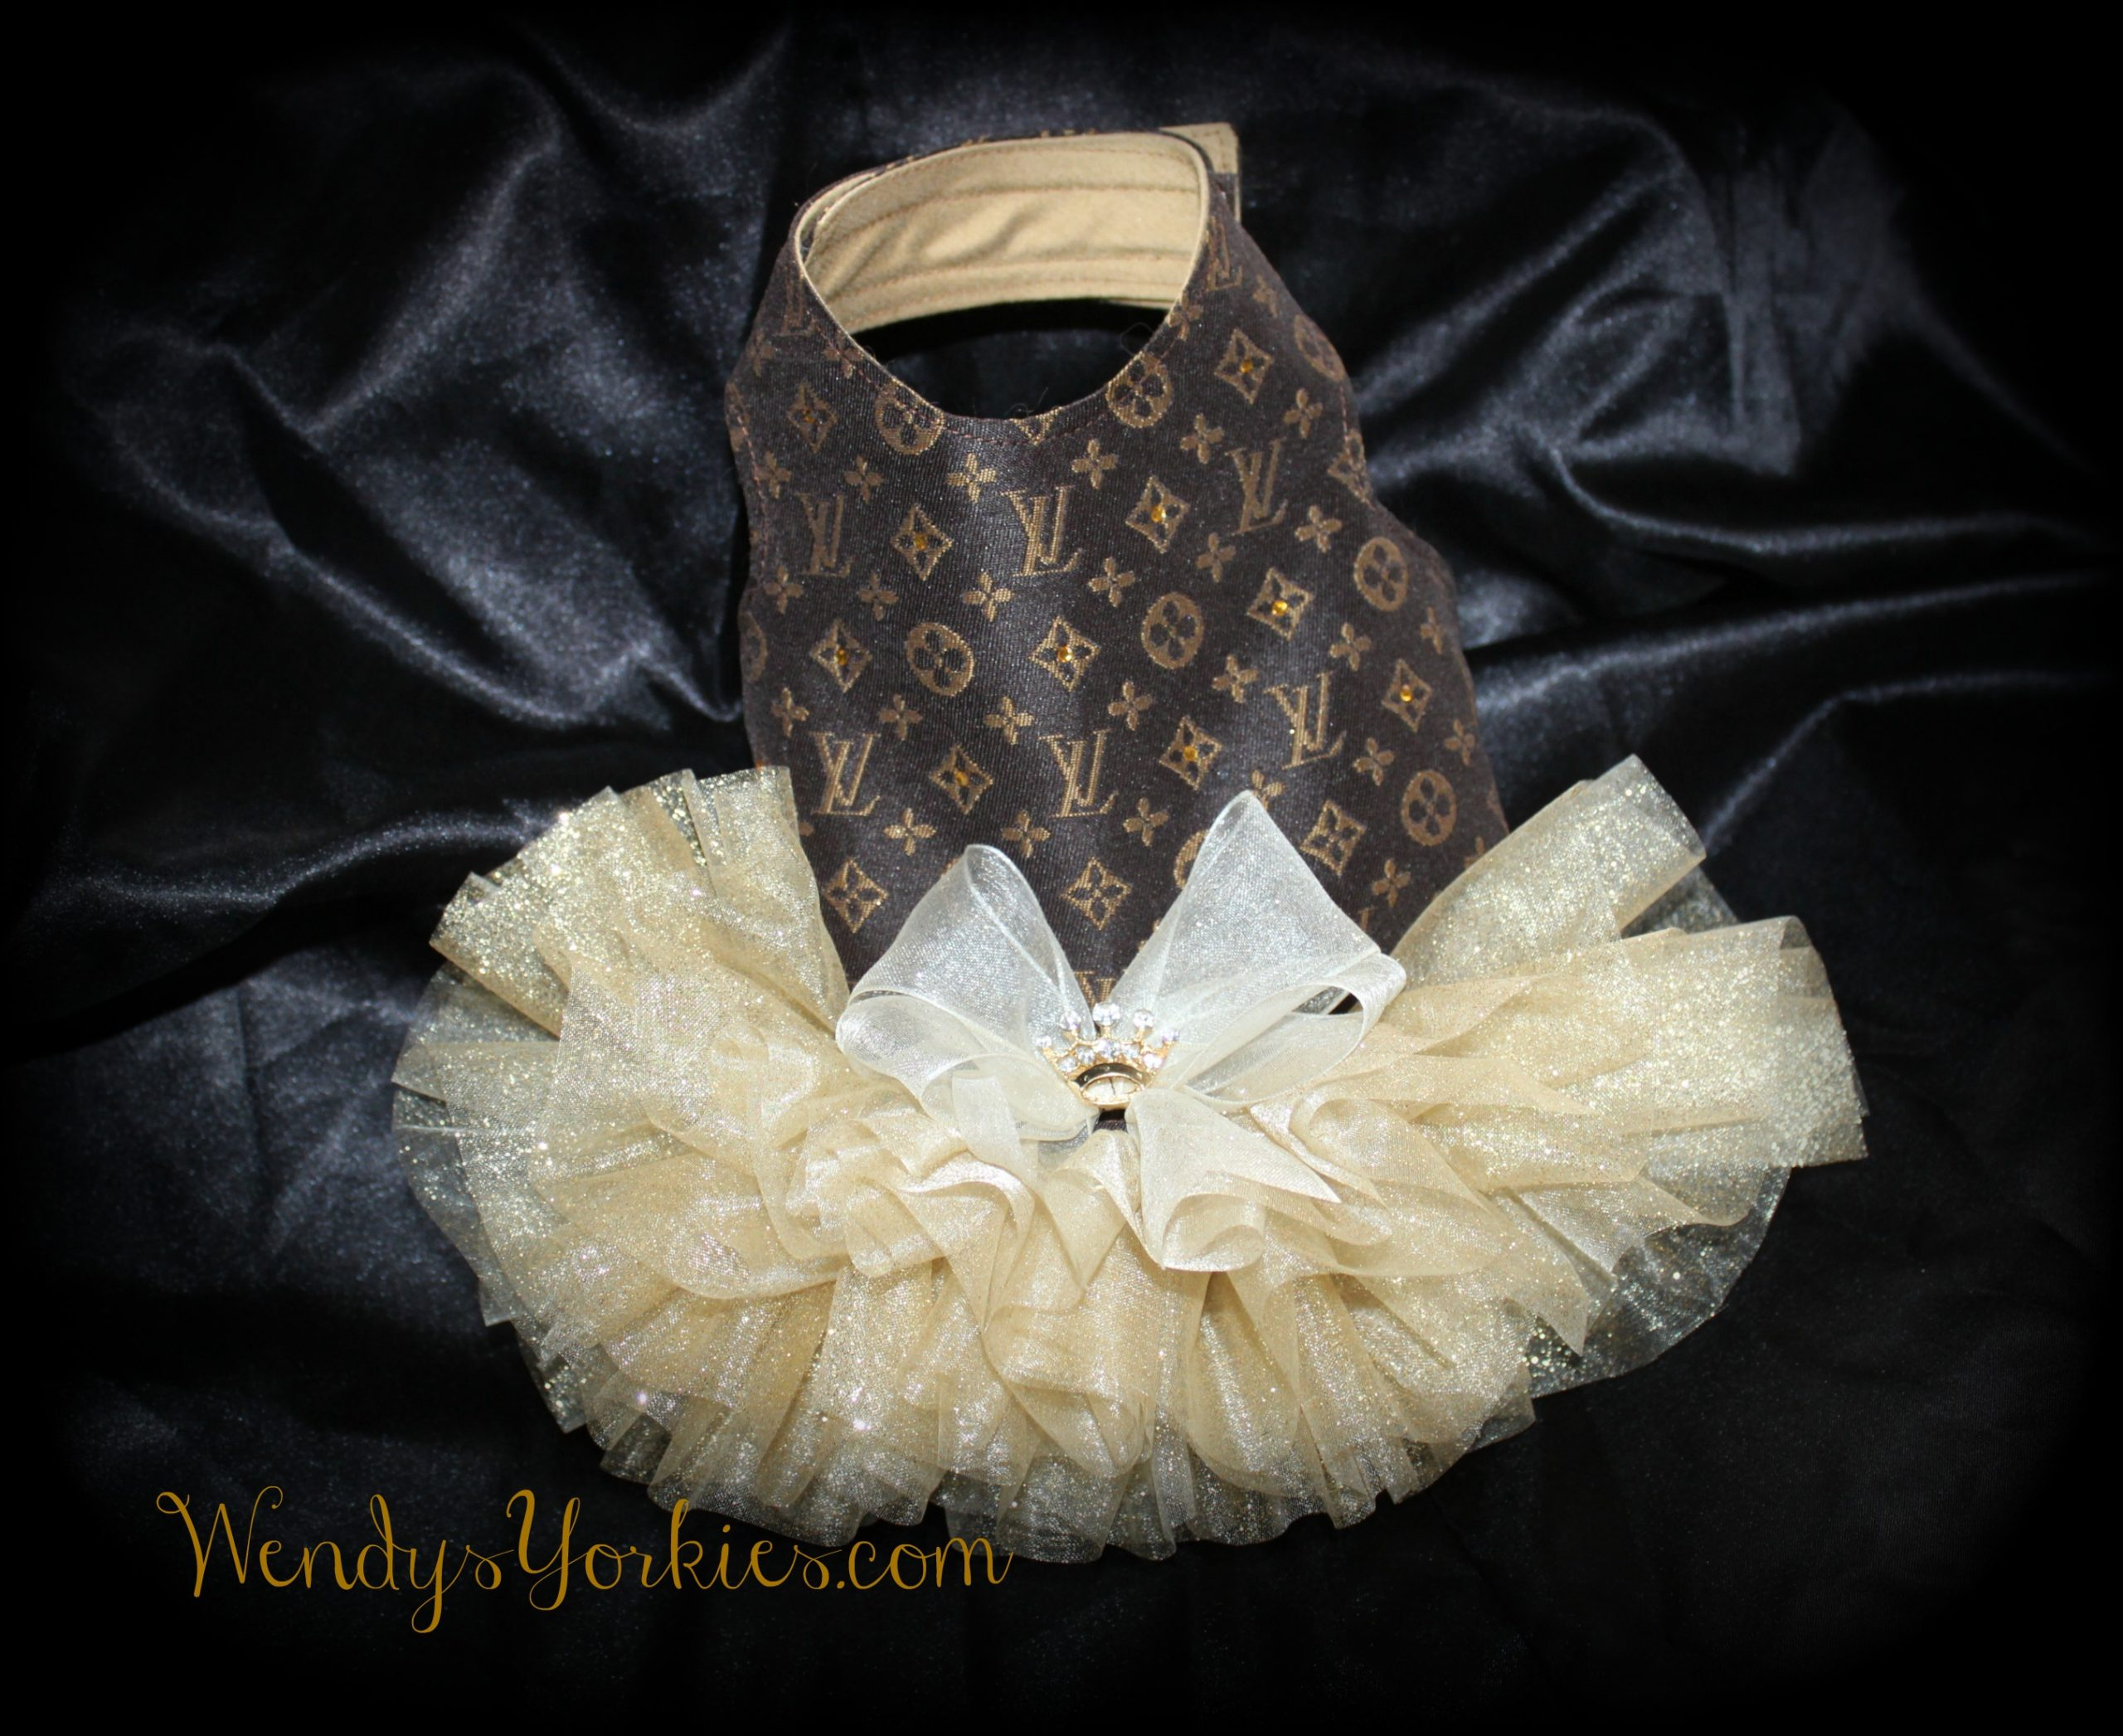 Designer inspired dog Dress, Gold LV Dog Tutu, WendysYorkies.com